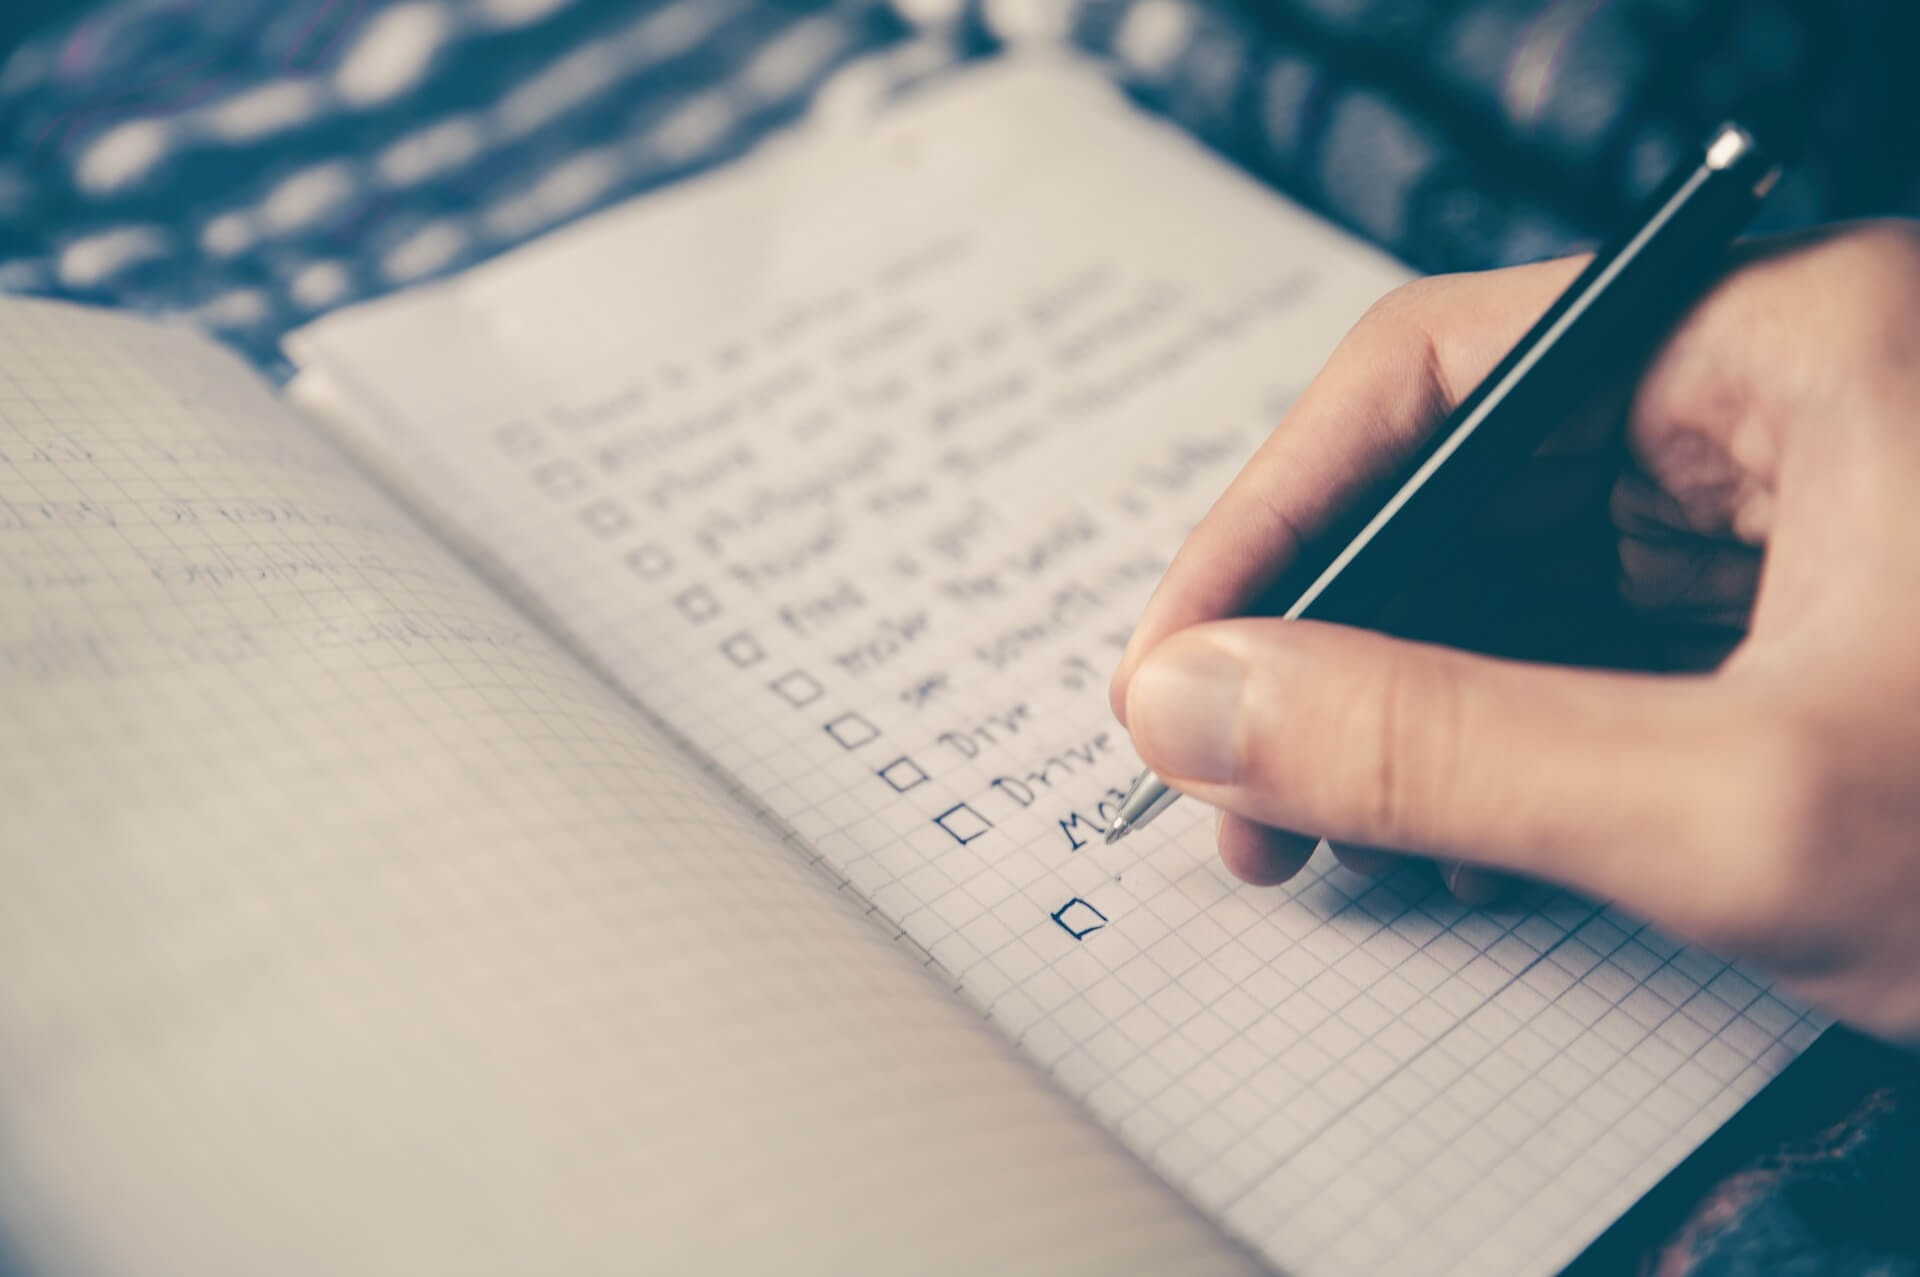 hand writing a checklist in a notebook